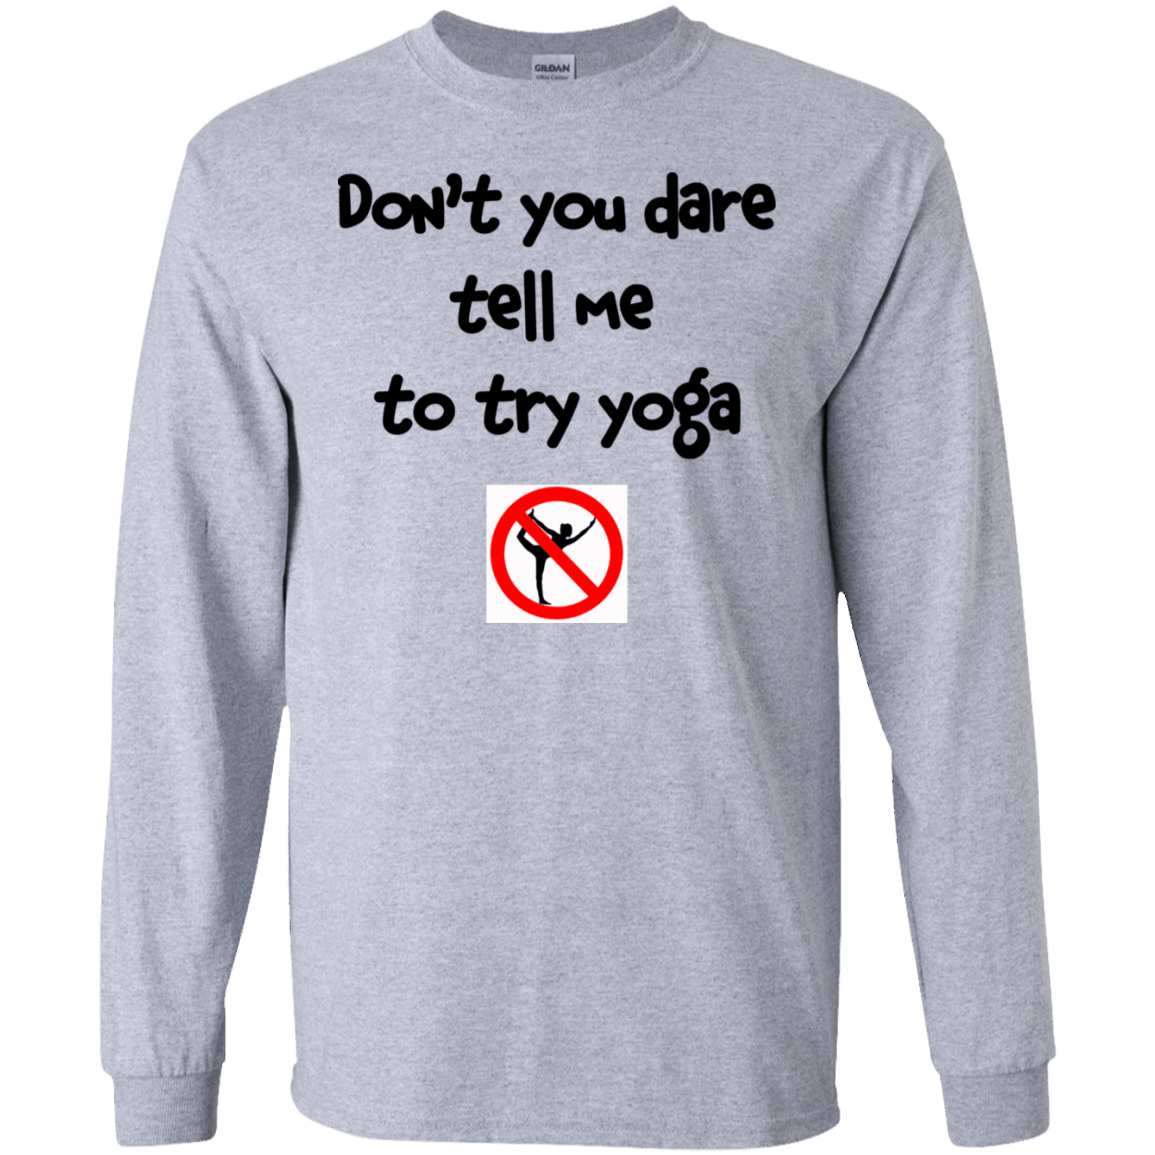 Don't You Dare Tell Me To Try Yoga 30-188-73056939-335 - Tee Ript